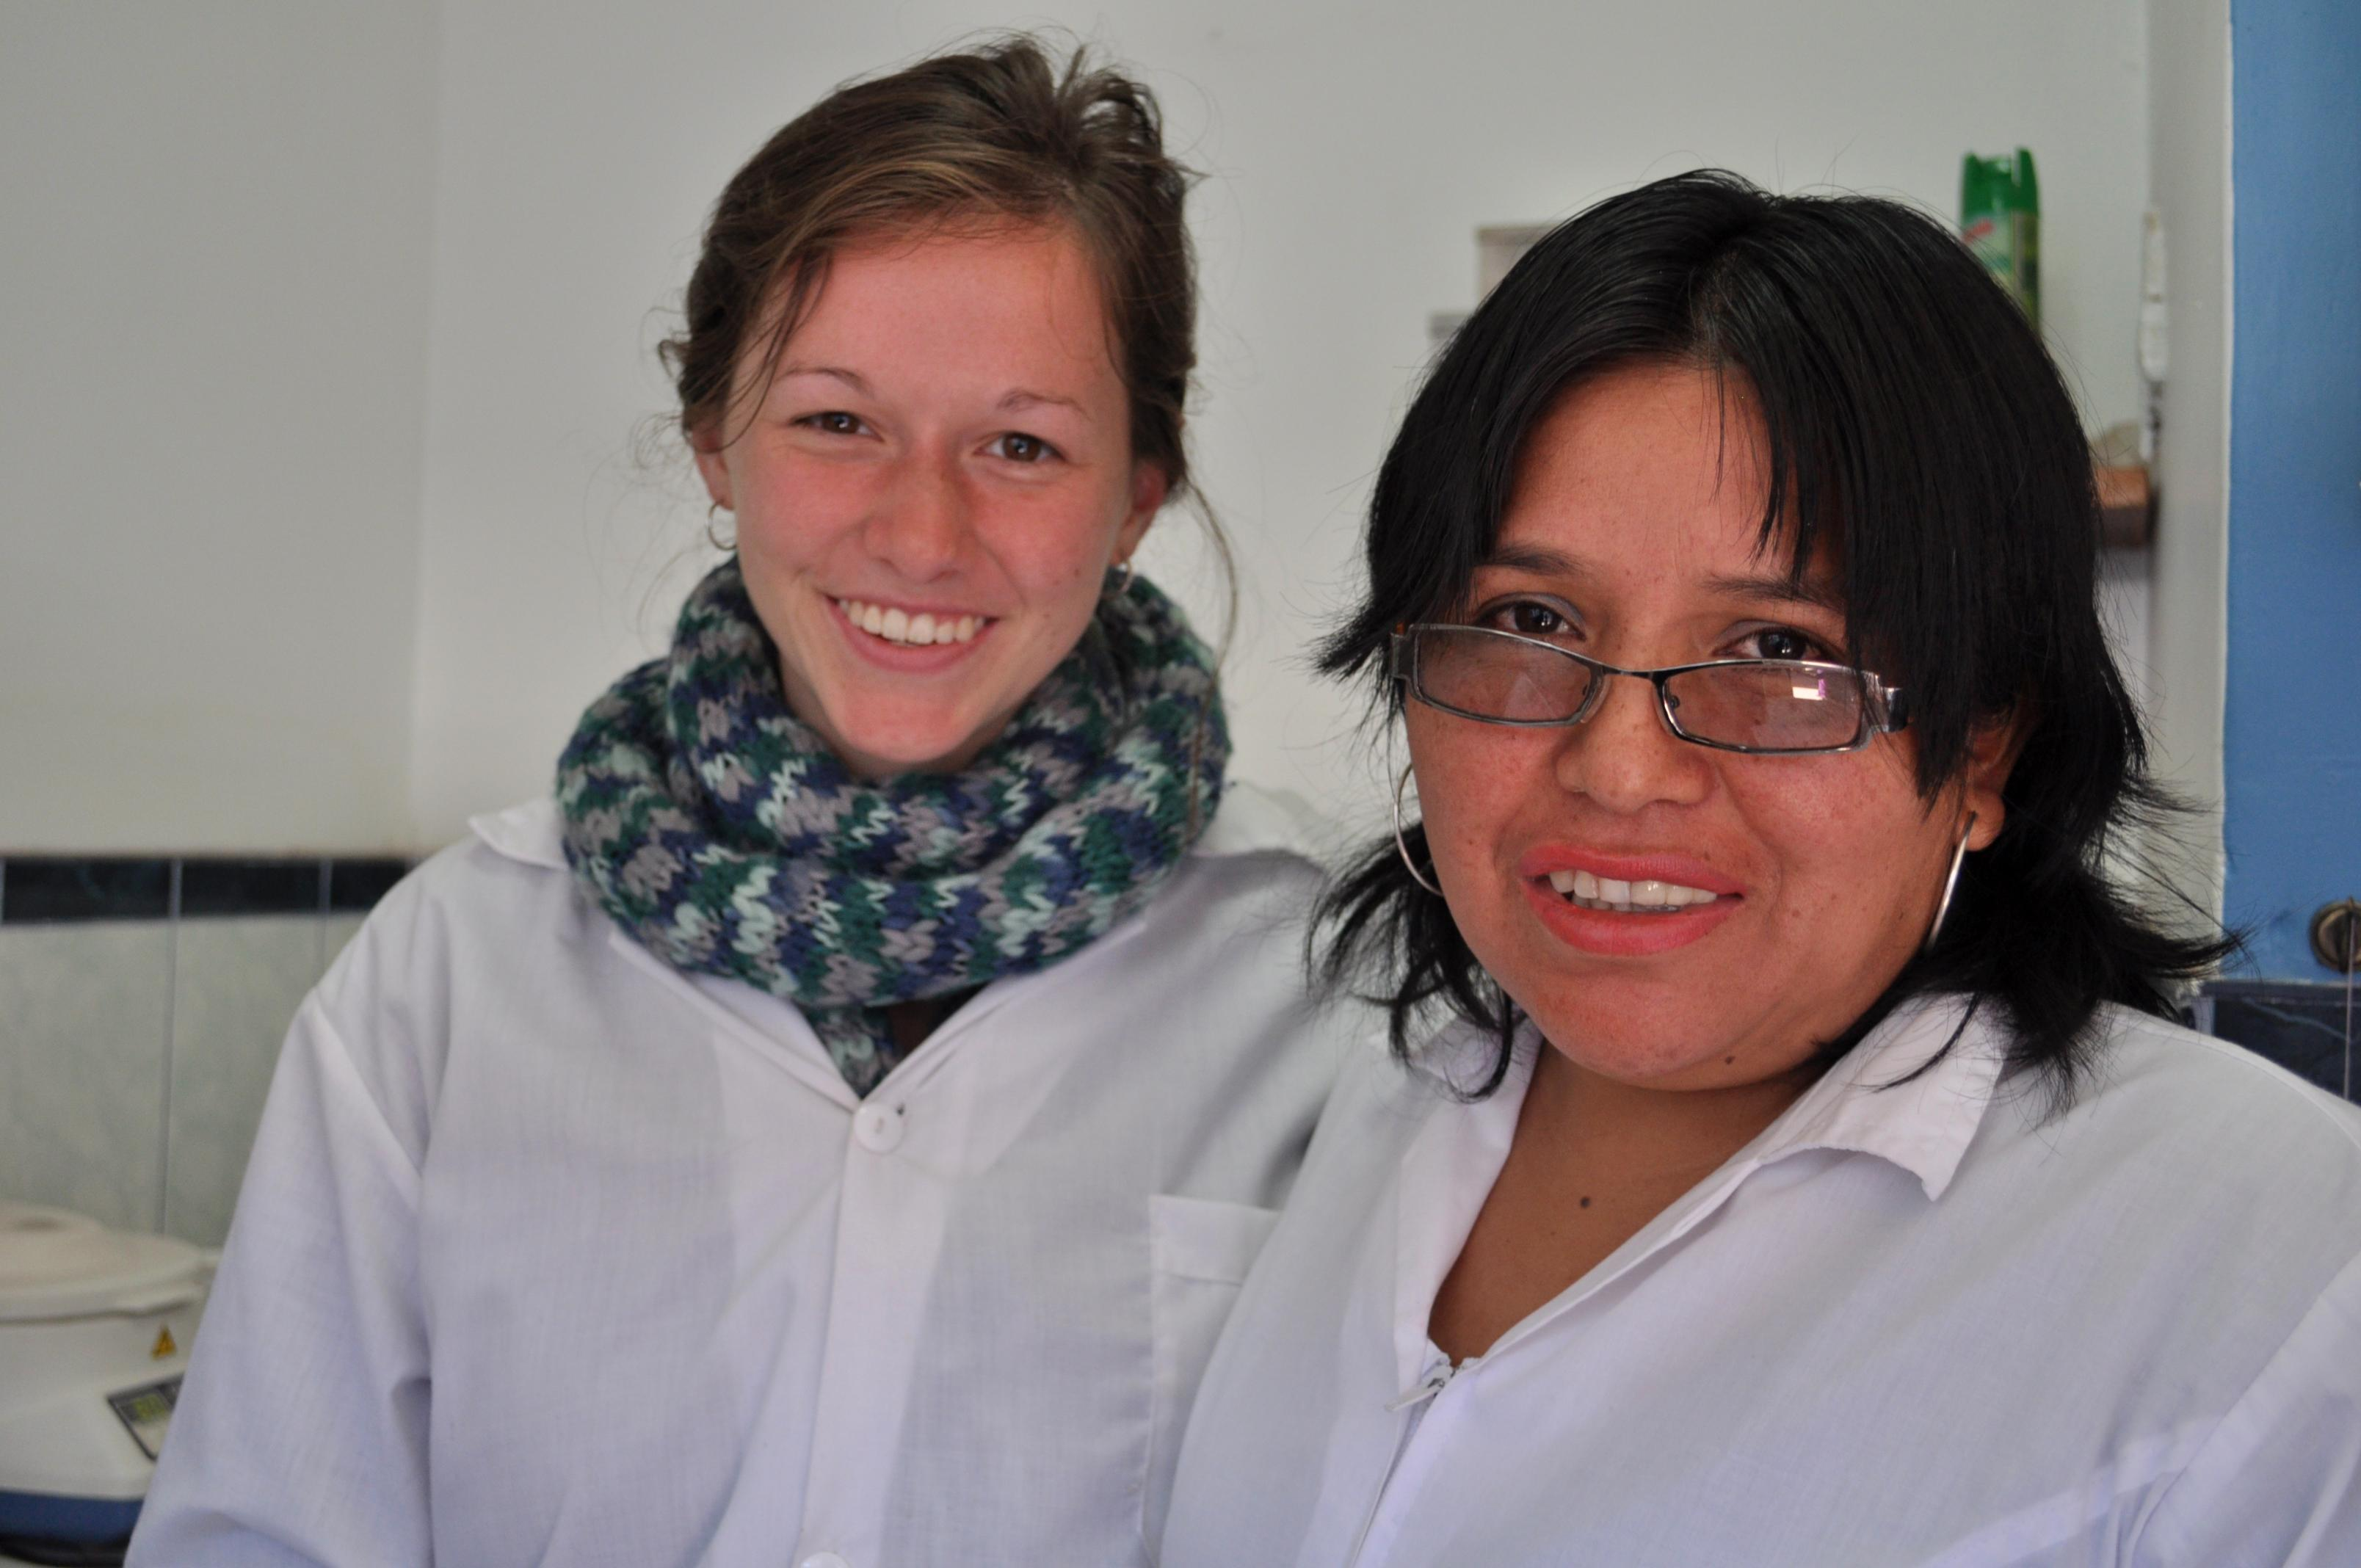 A female Projects Abroad intern is pictured smiling with a local nurse during her midwifery internship in Peru.